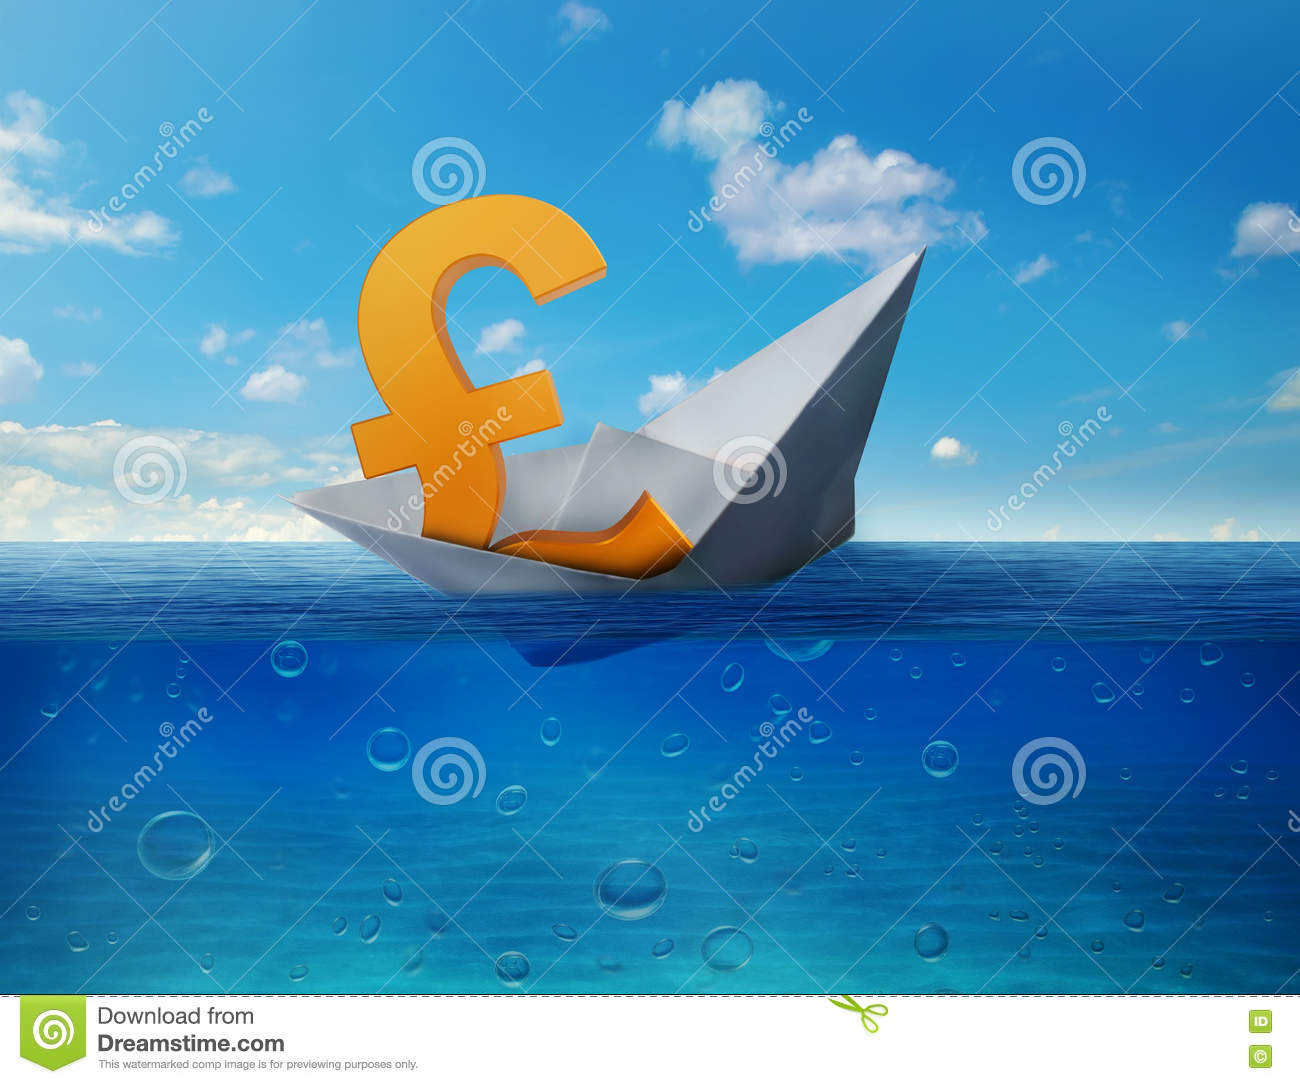 Pound sinking in sea symbol of future uk economy depression pound sinking in sea symbol of future uk economy depression recession economic downturns results of brexit polls debt down buycottarizona